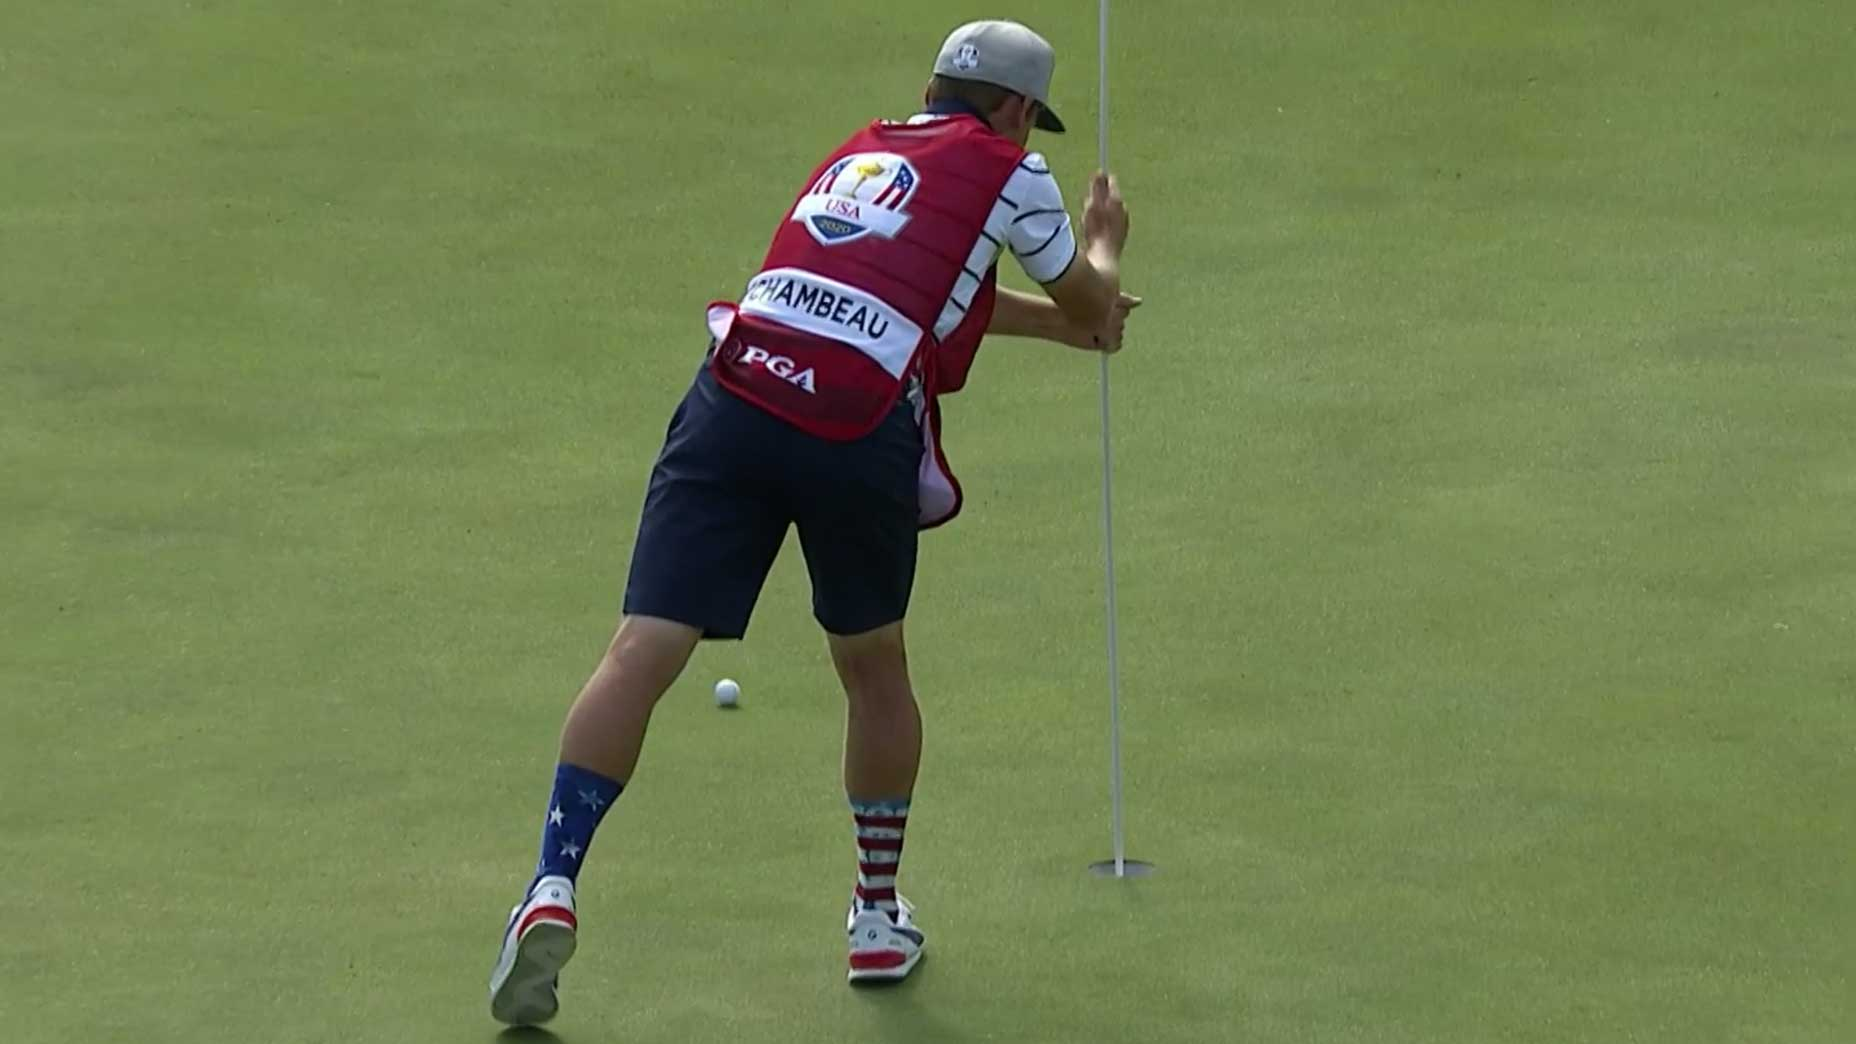 bryson's caddie with flagstick